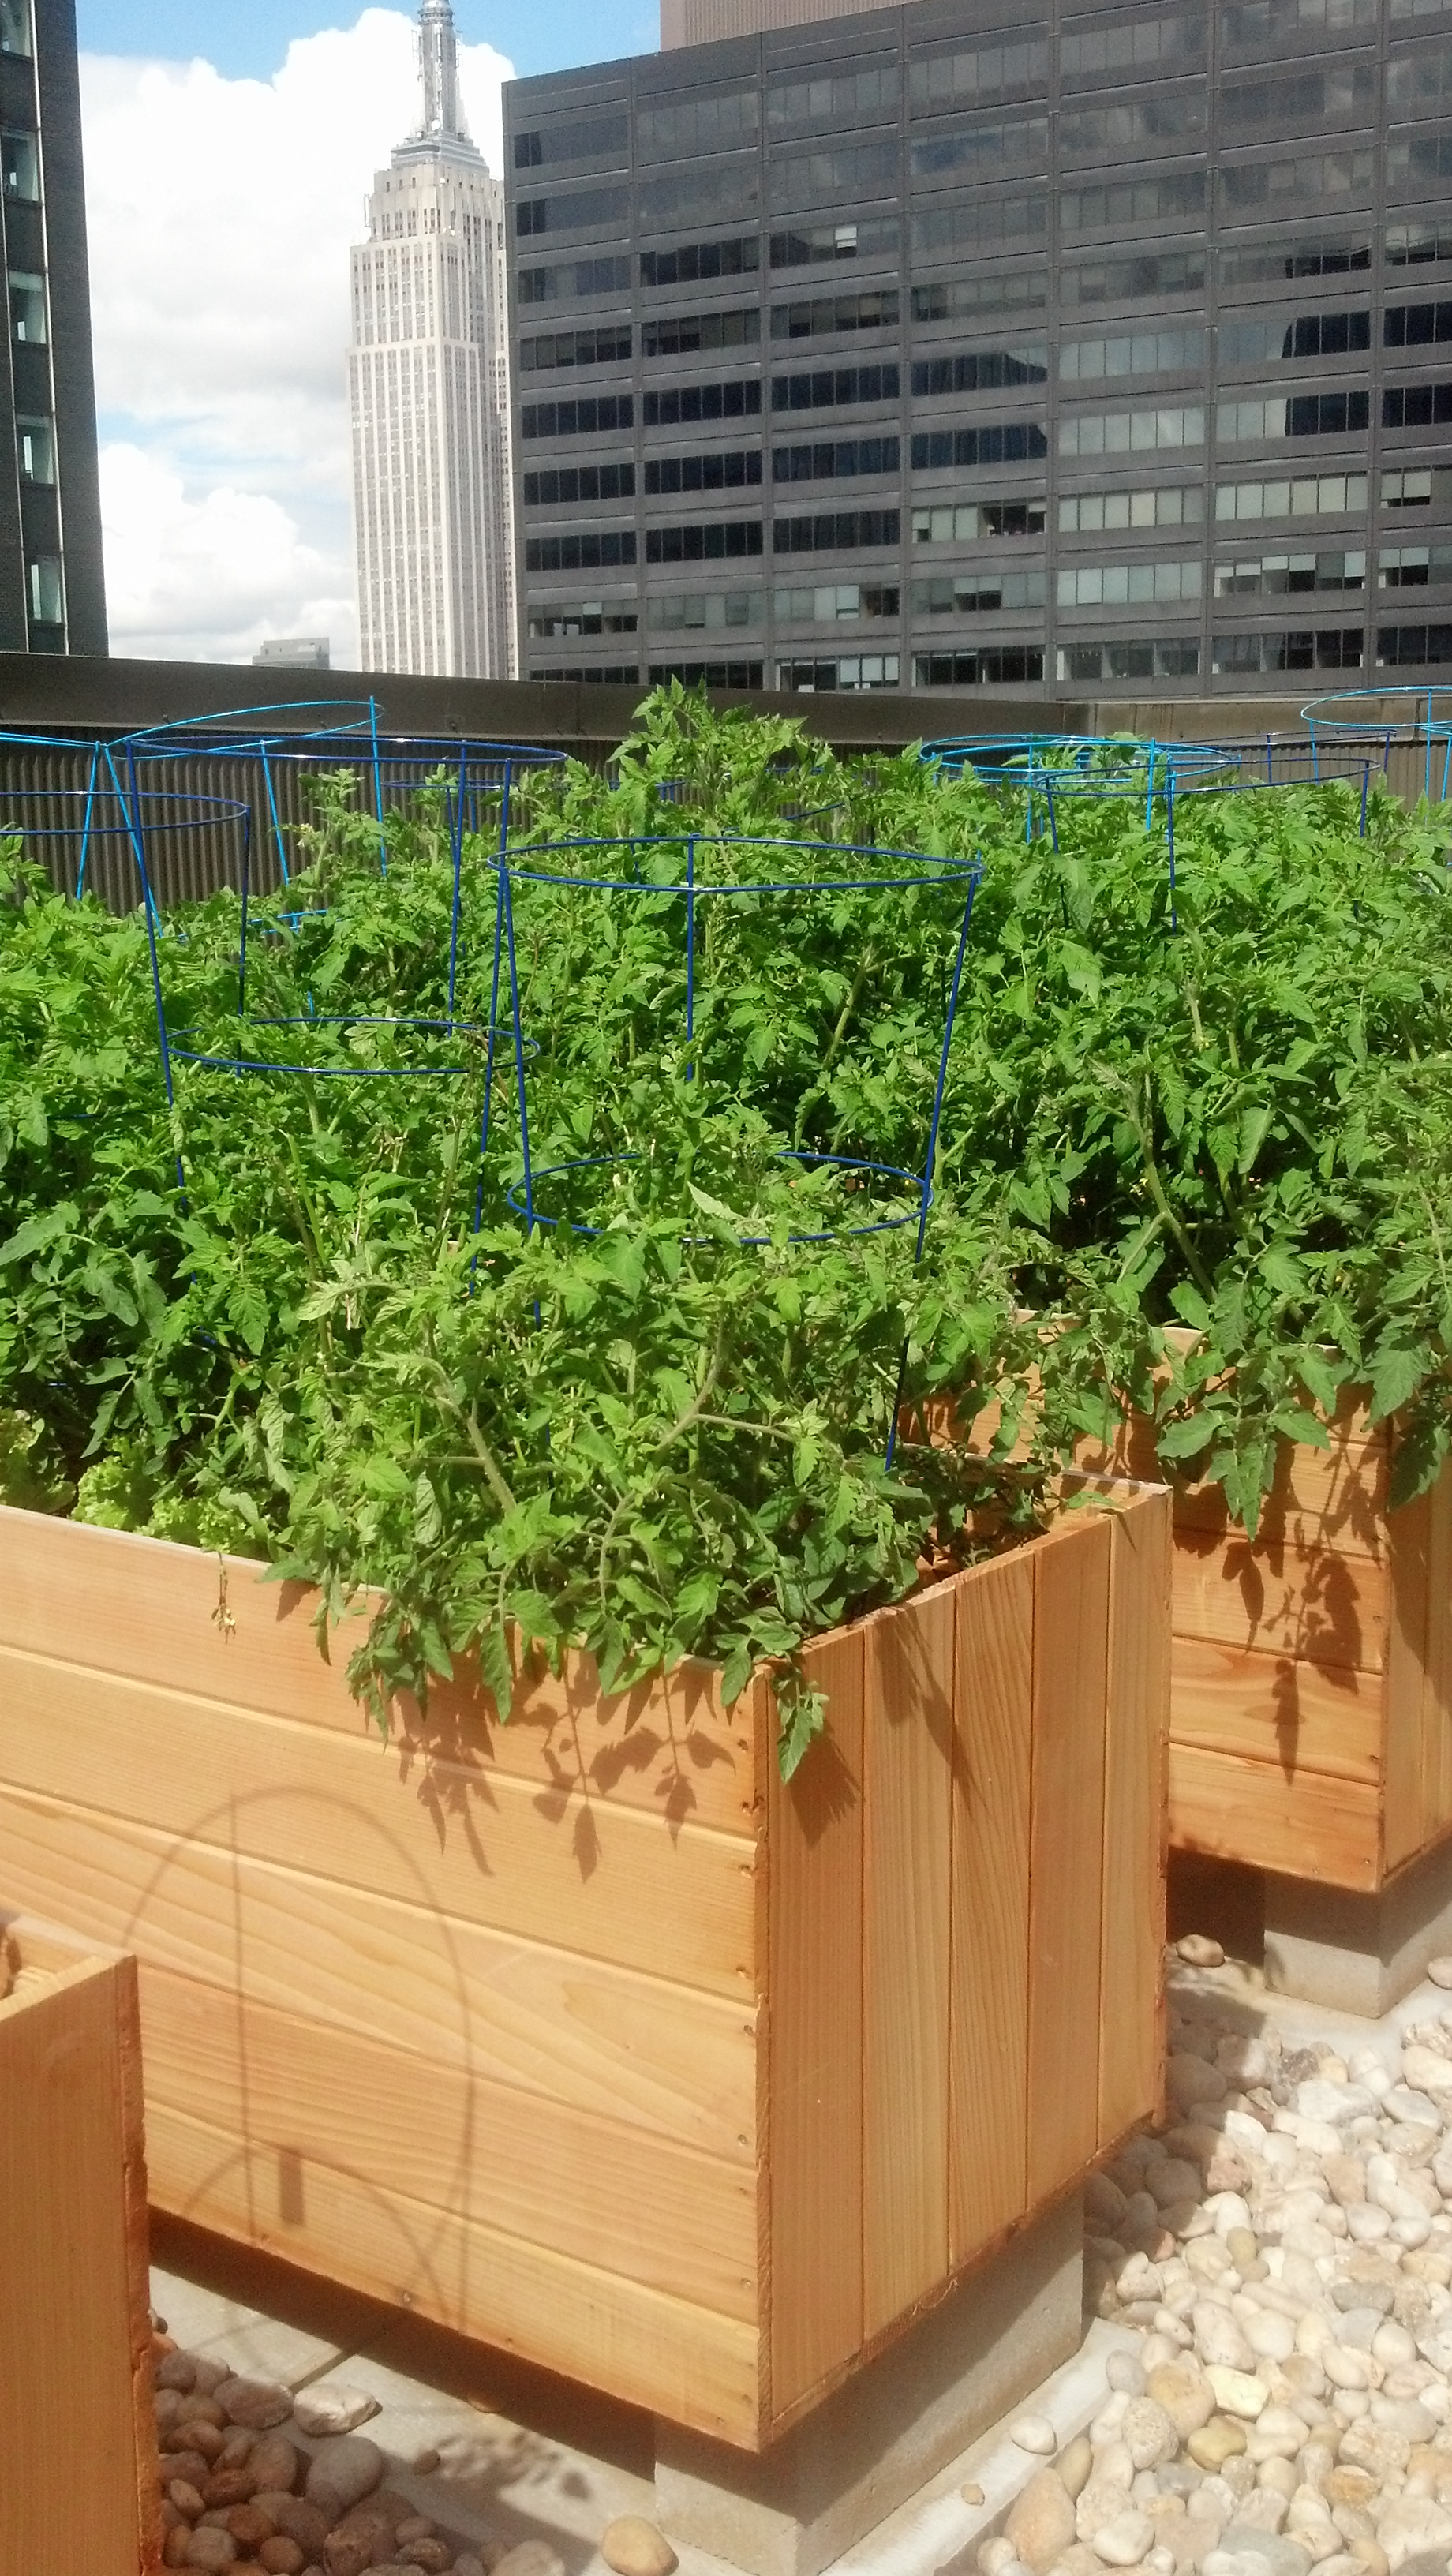 The vegetable beds at the Westin New York Grand Central's rooftop garden are made from white cedar wood.